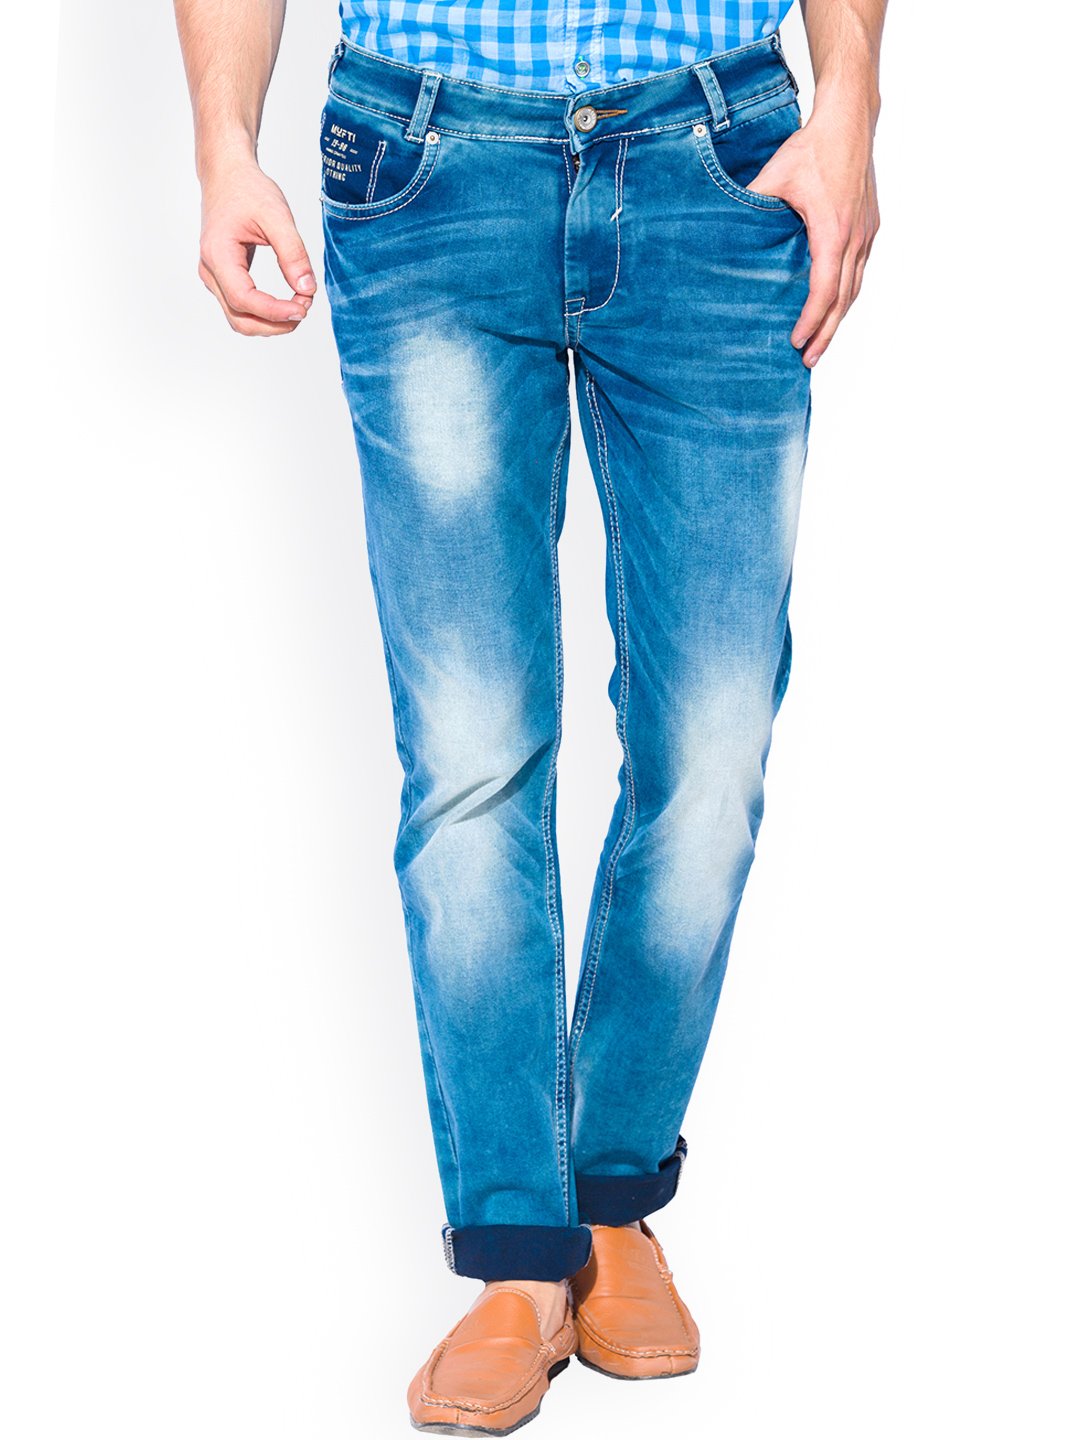 Mufti Price Online 70% off on Shirts Jeans + 14% Cashback